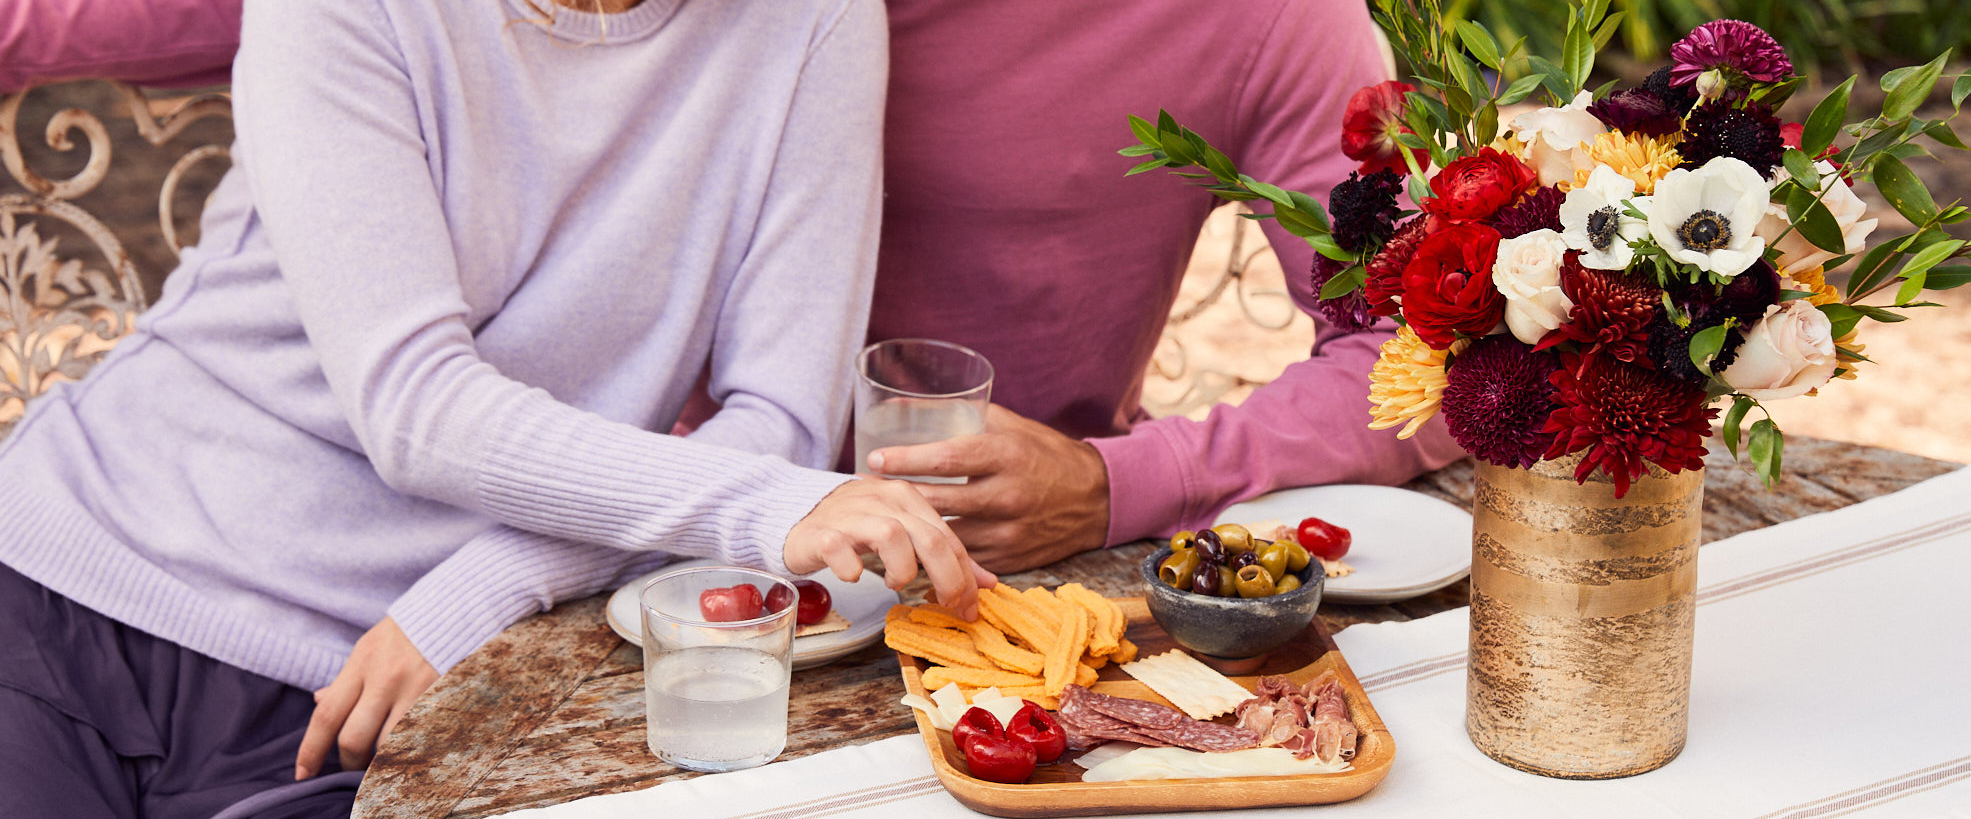 Couple holding an outdoor dinner party for fall with fresh flowers